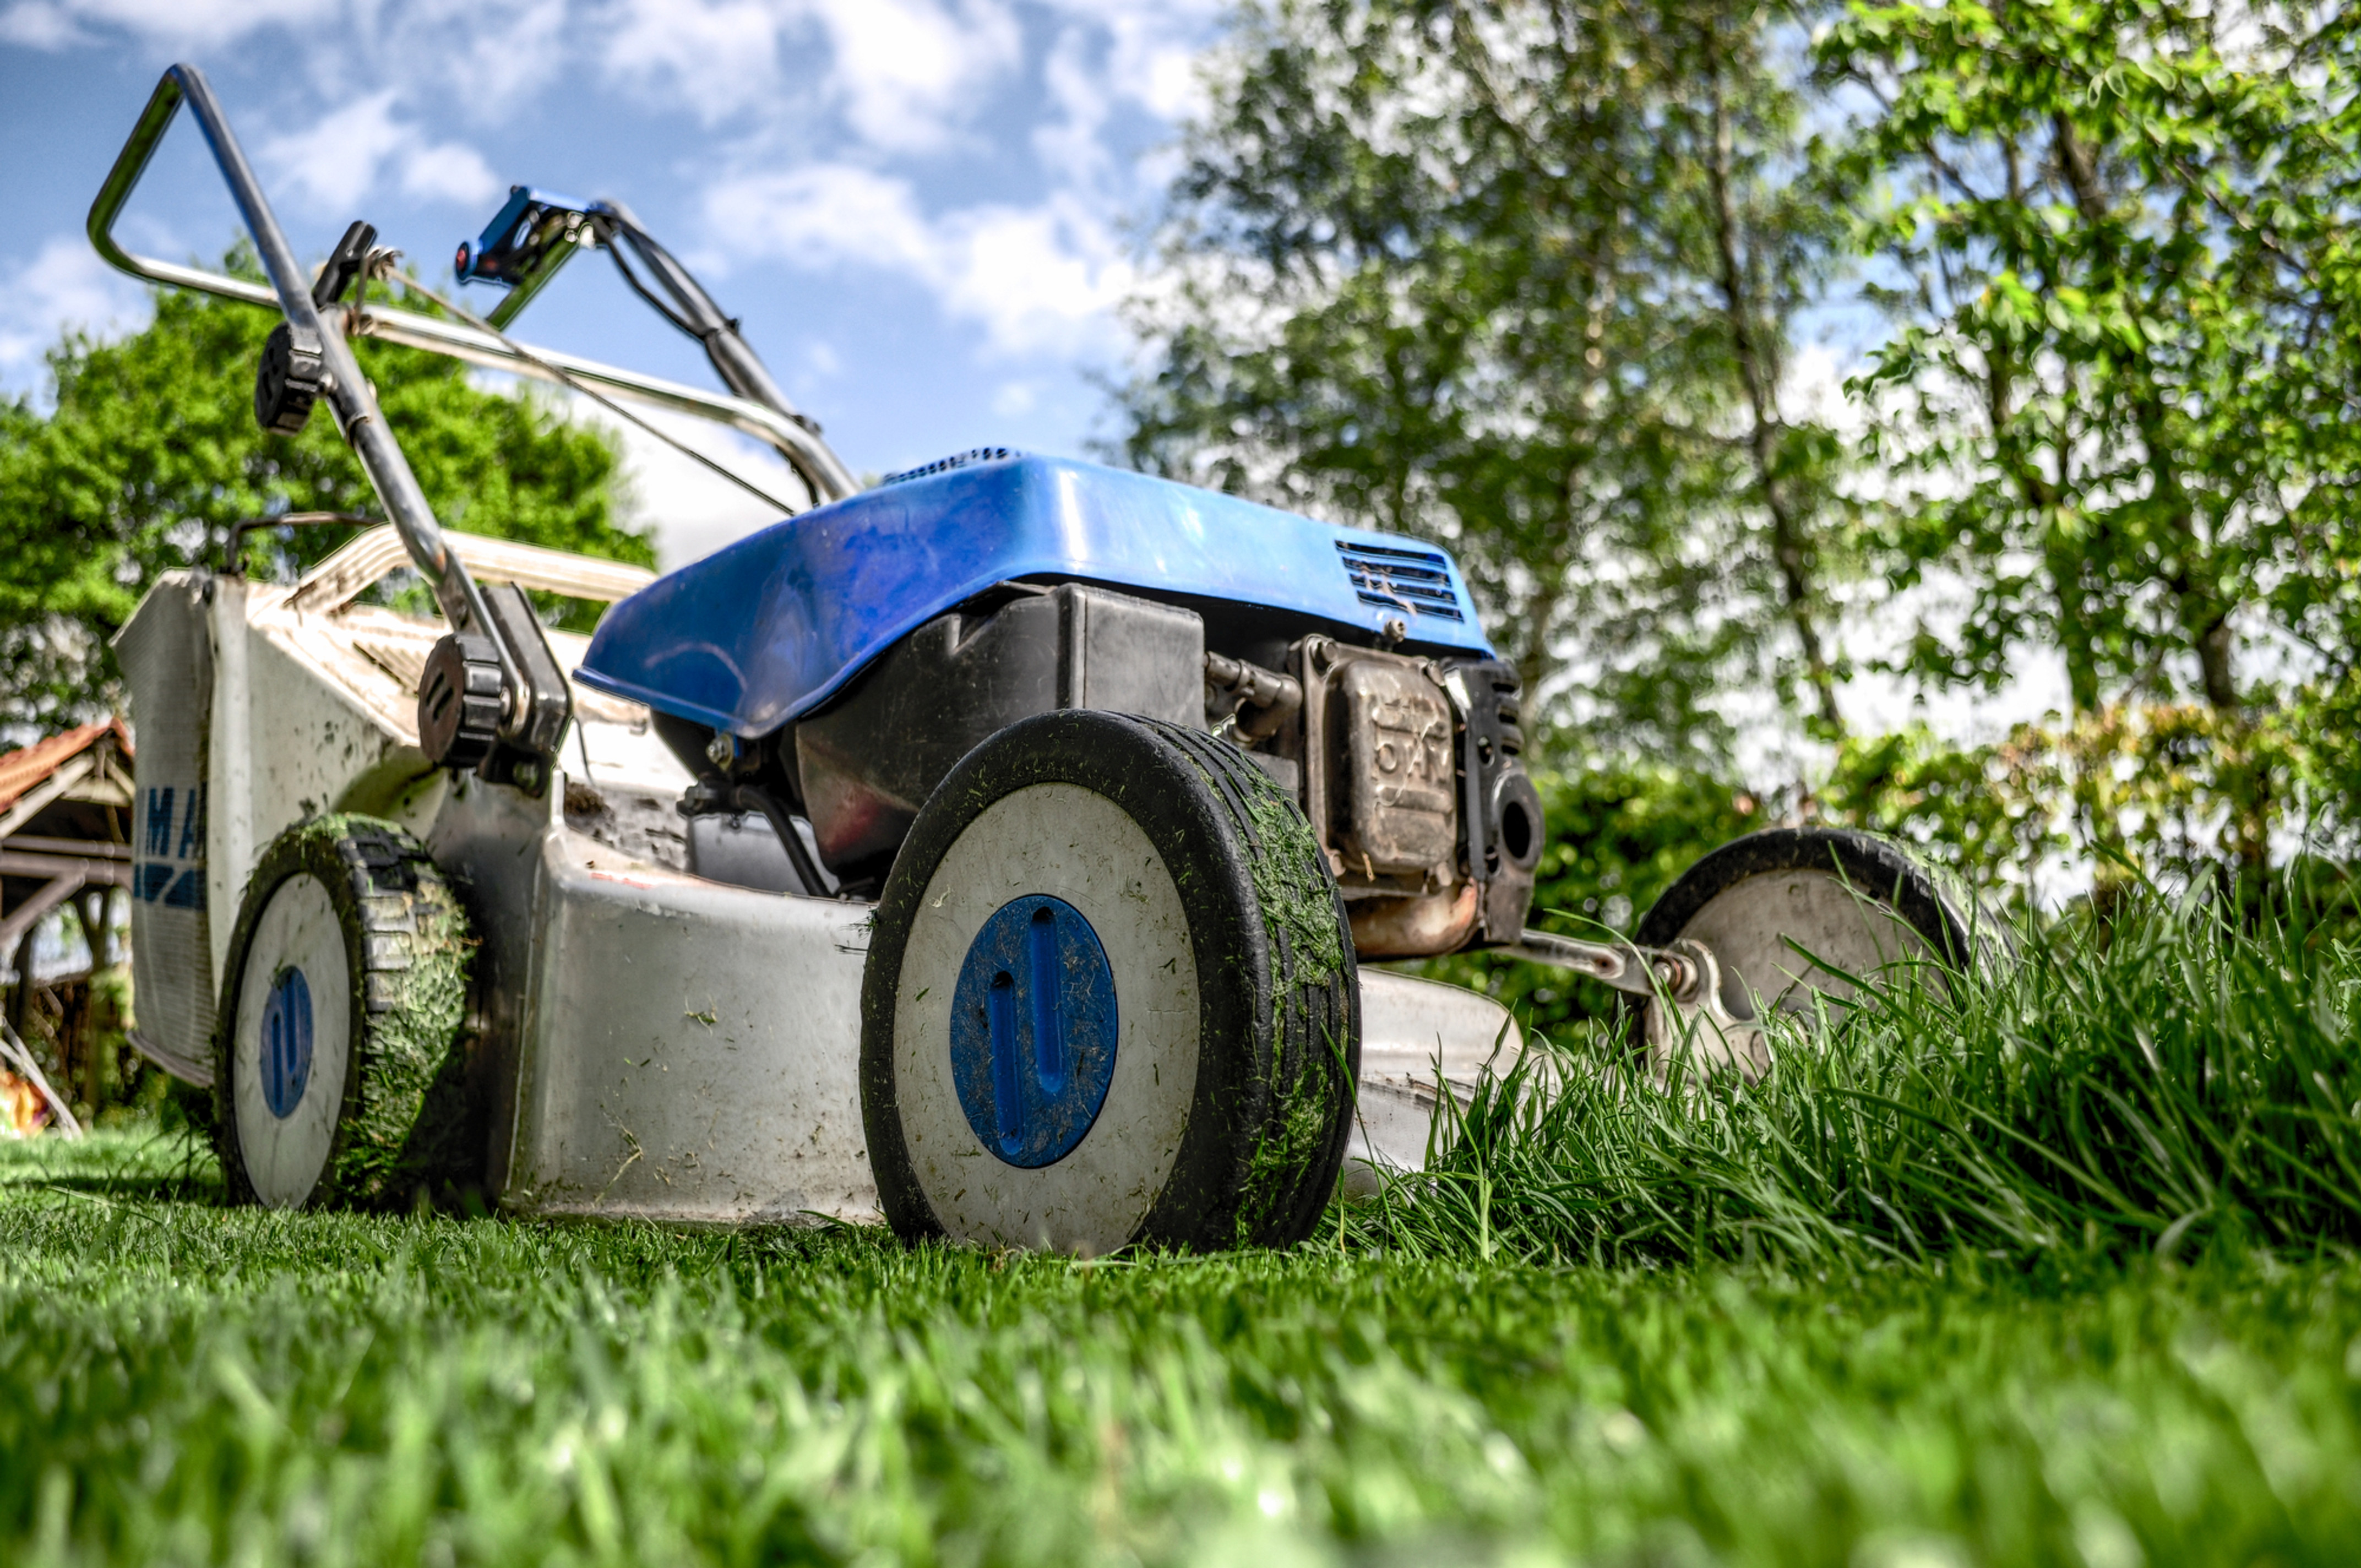 Lawn Mowing + Garden Waste Removal